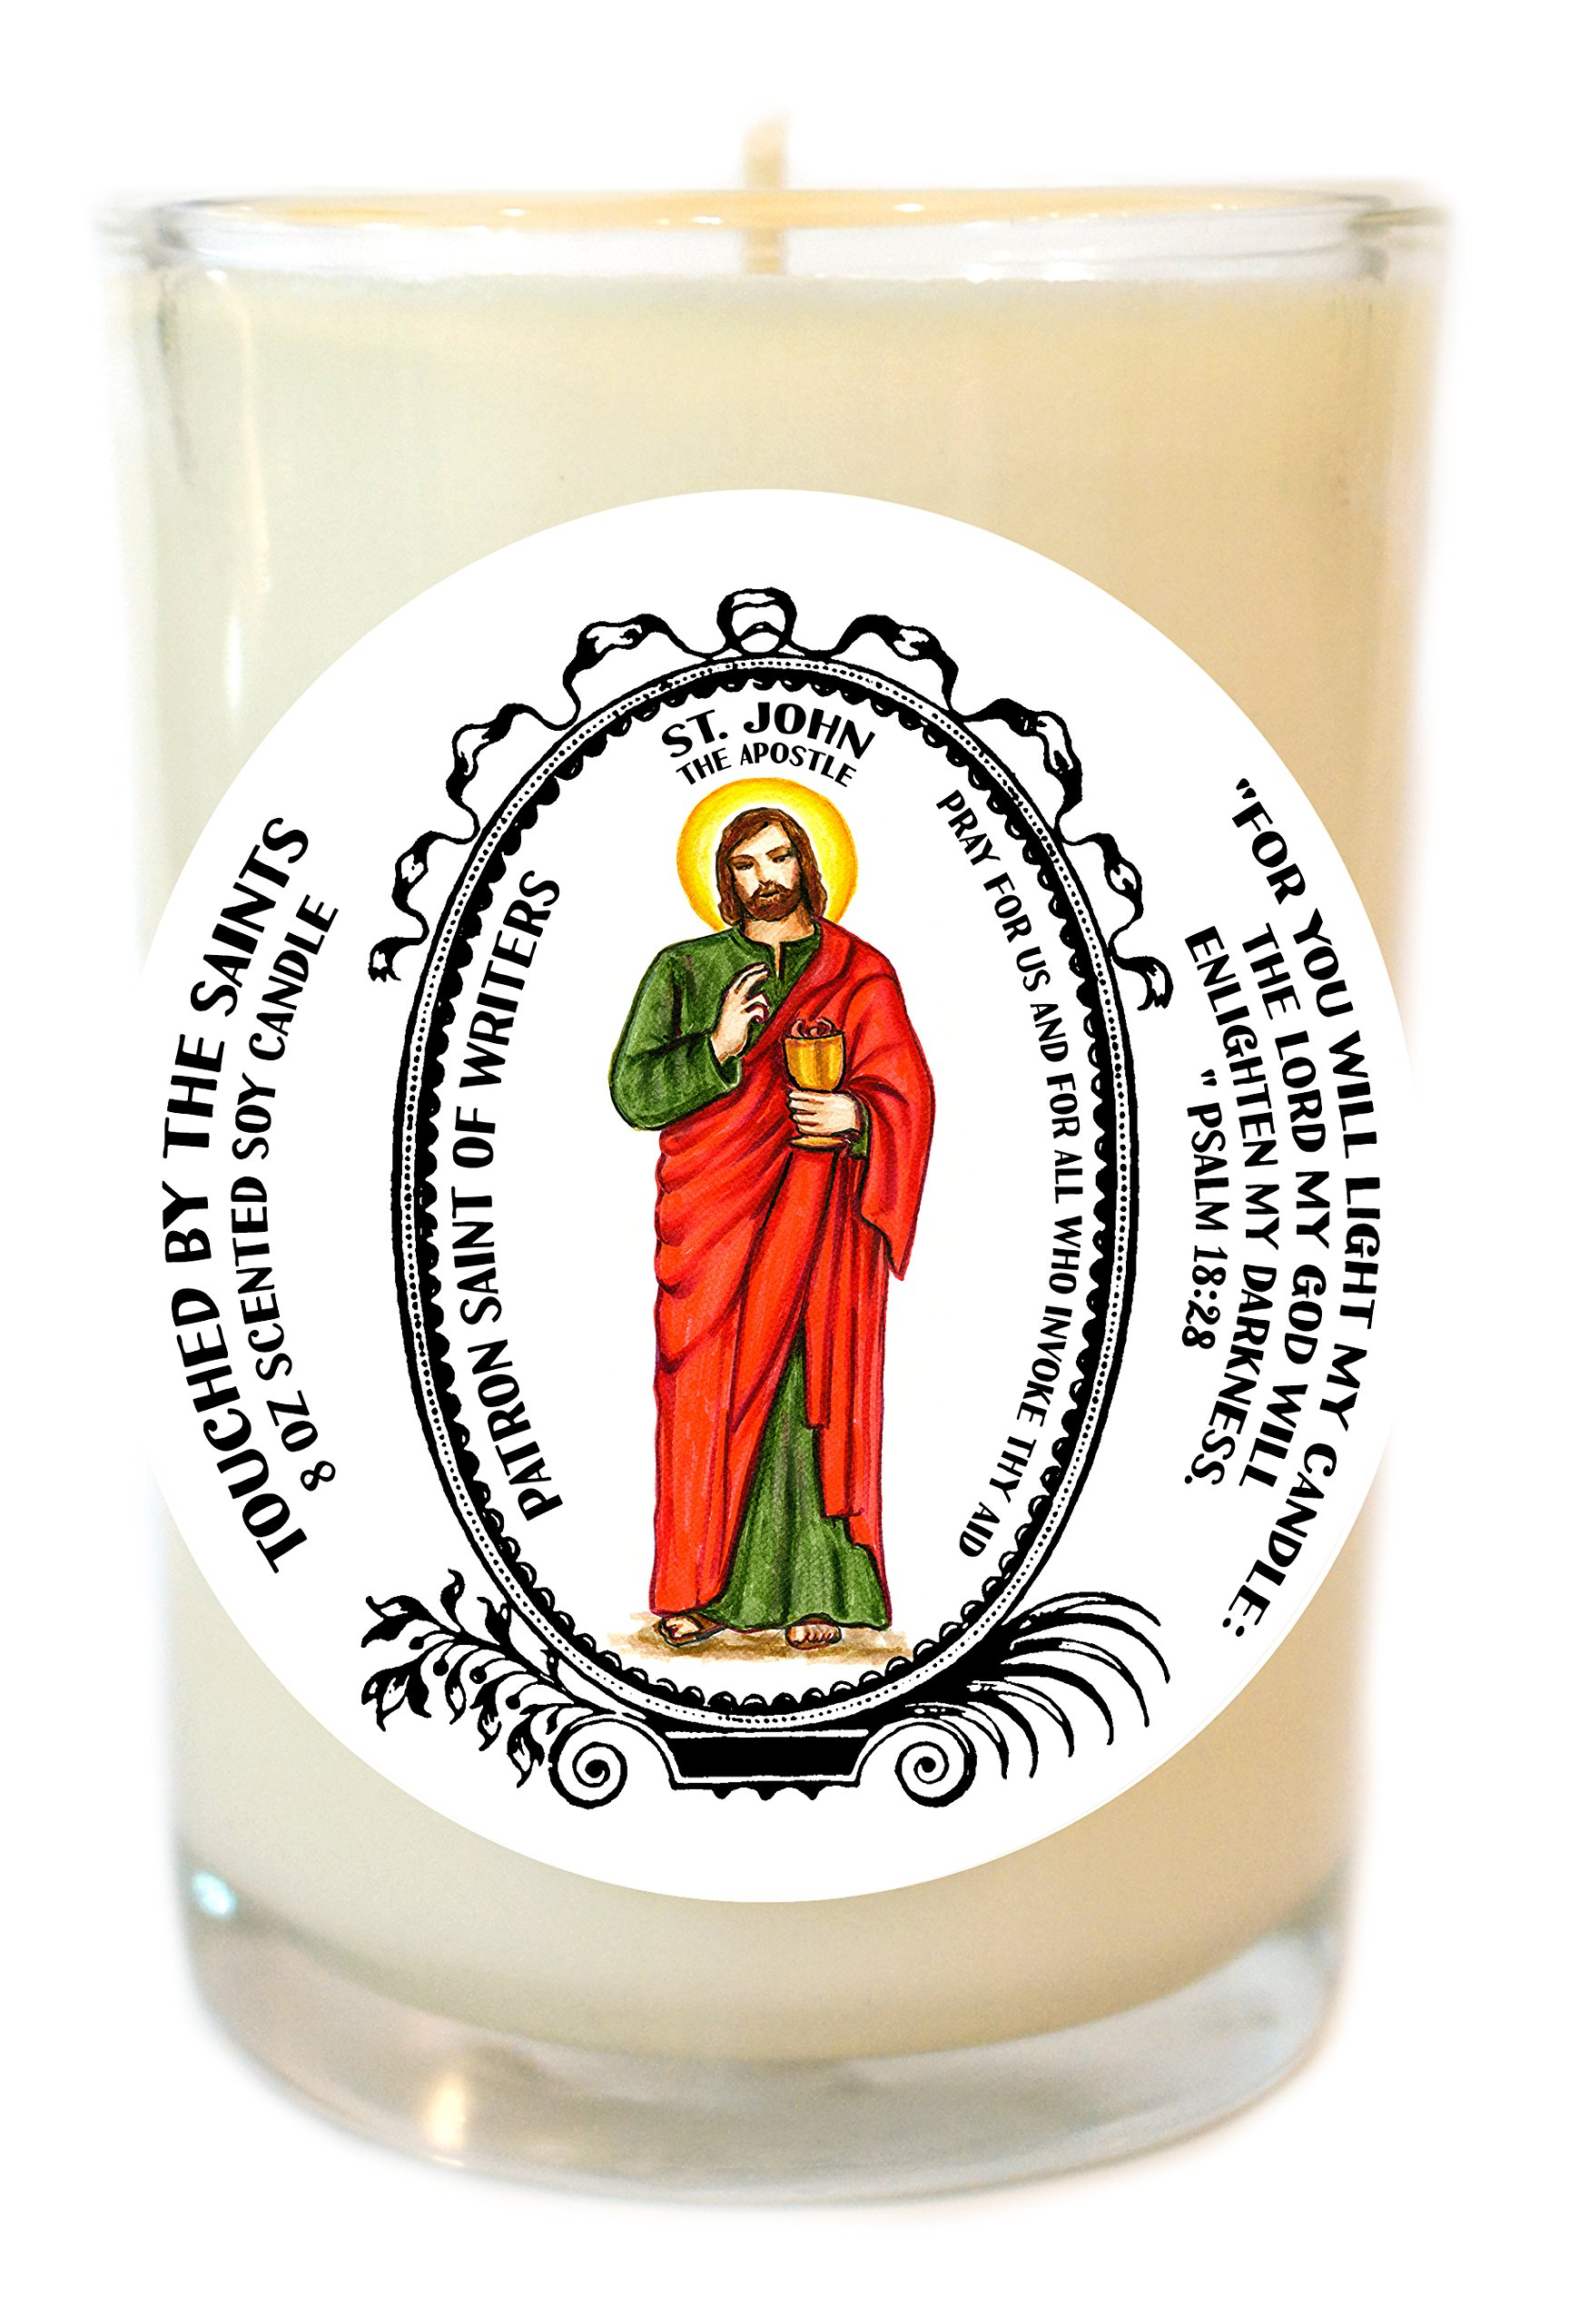 St John Apostle of Writers 8 Oz Scented Soy Glass Prayer Candle by Touched By The Saints